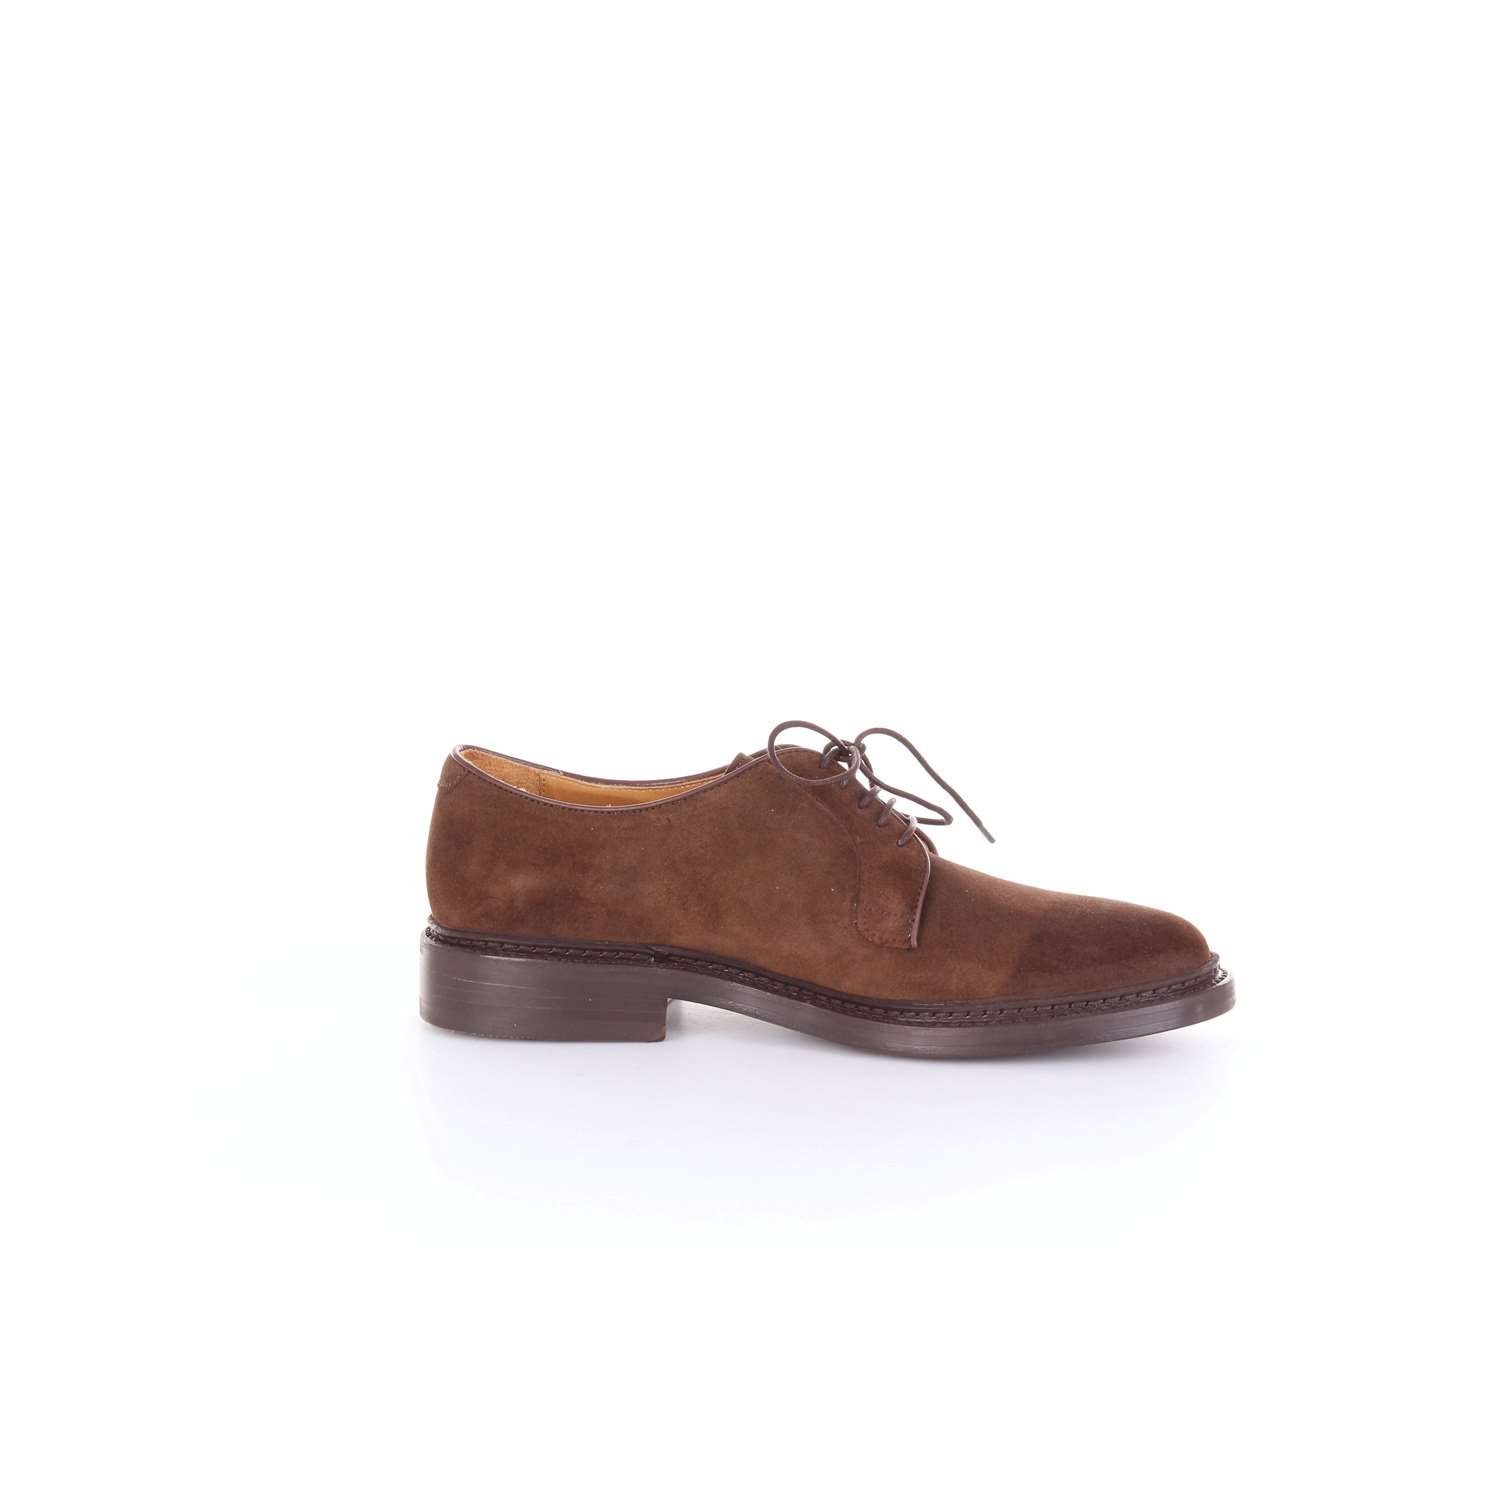 Berwick 1707 4140 Chaussures Classiques Homme Marron 6½ CwomeTS